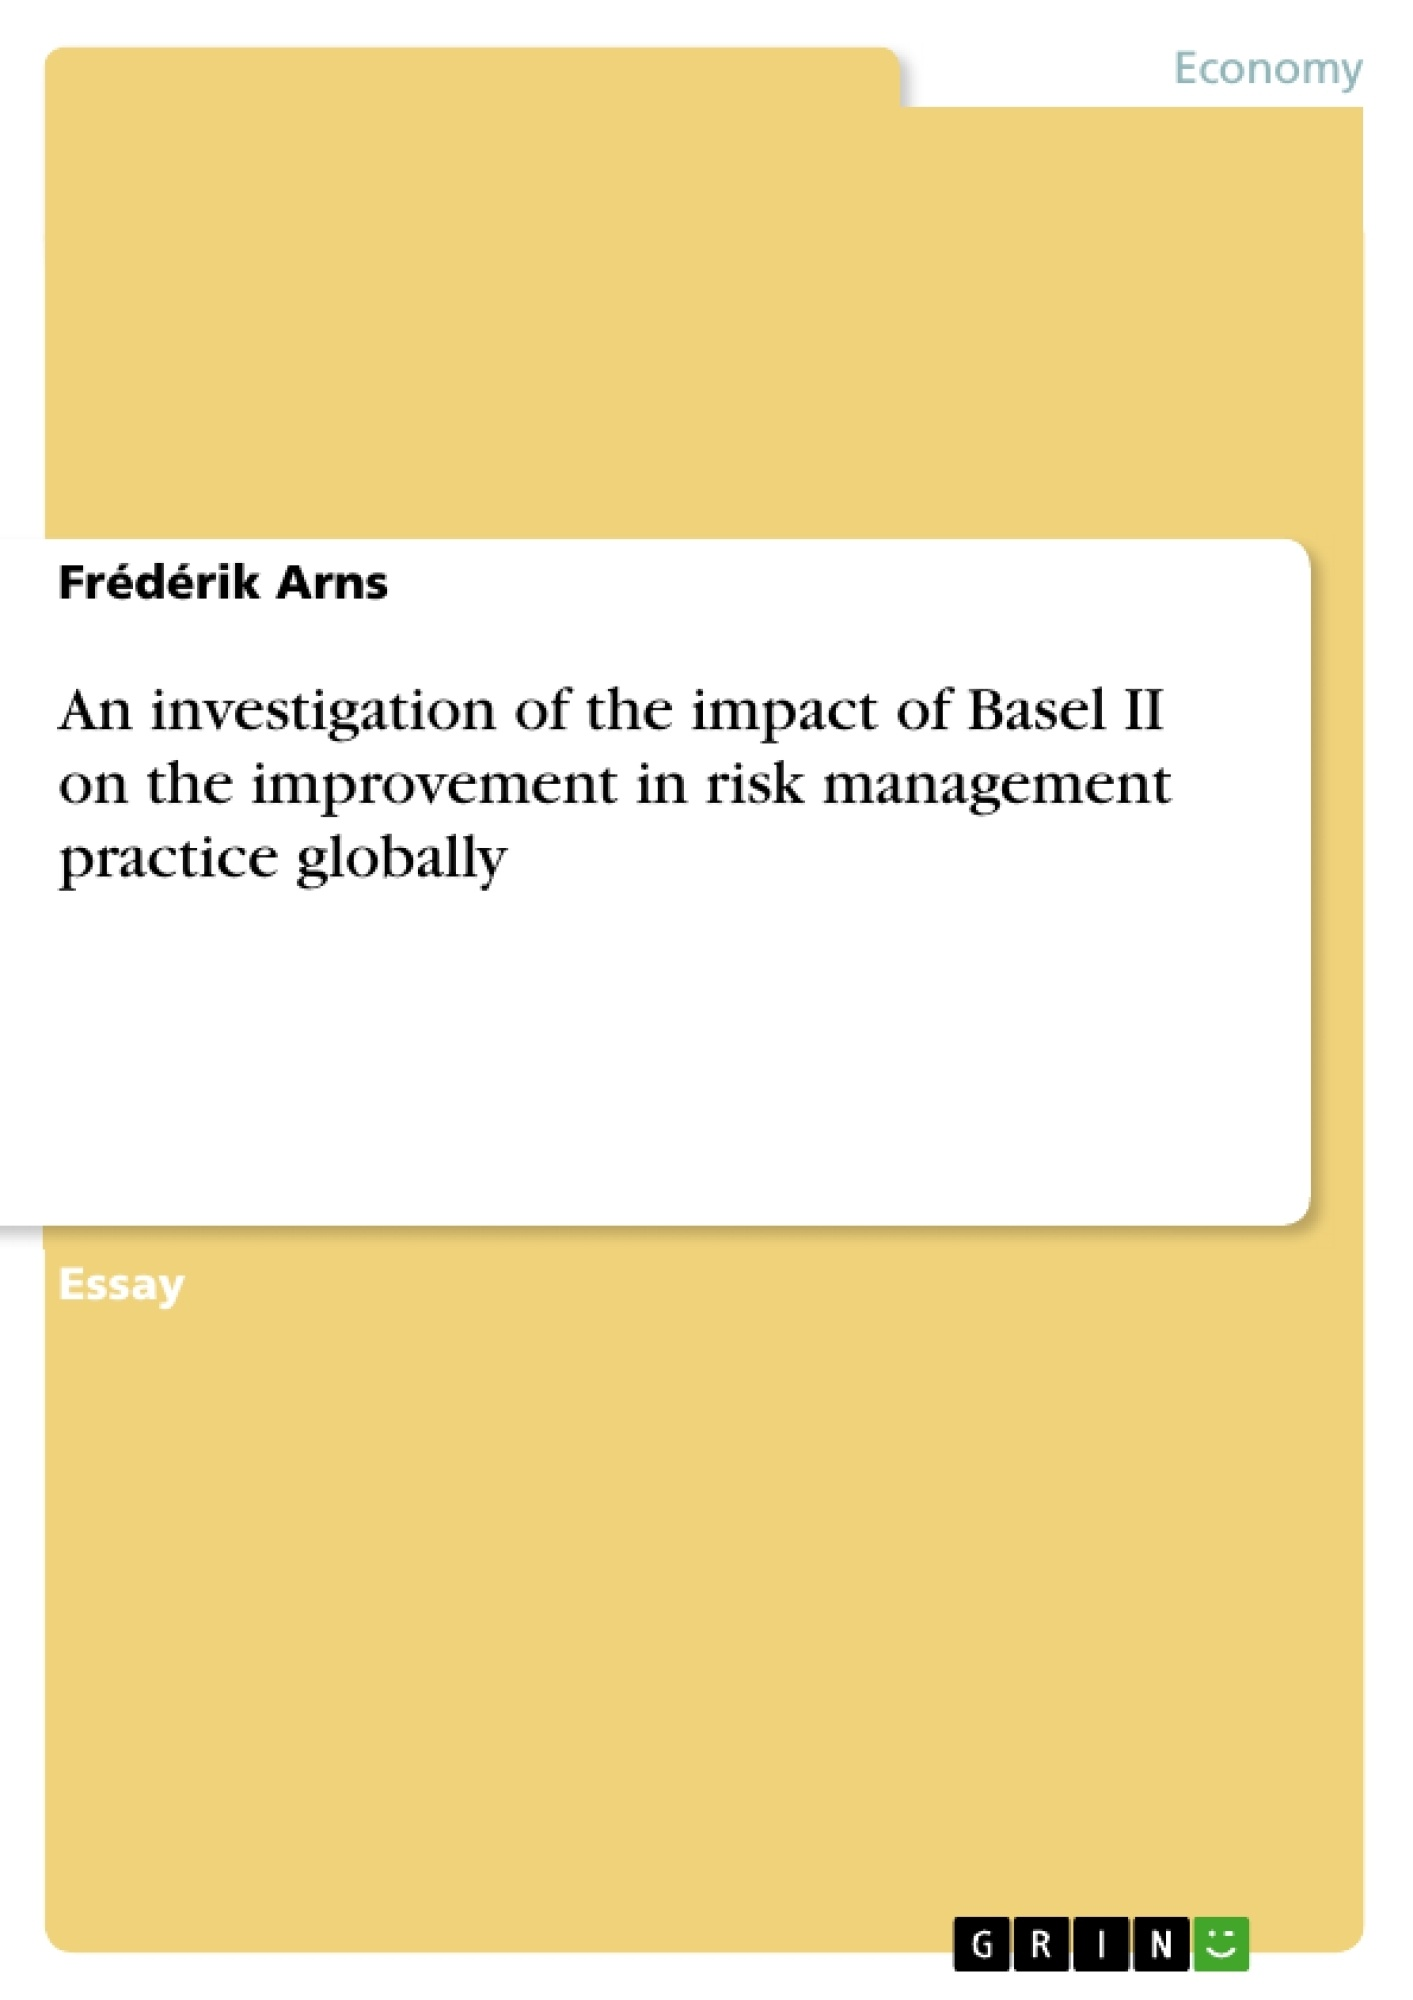 Title: An investigation of the impact of Basel II on the improvement in risk management practice globally